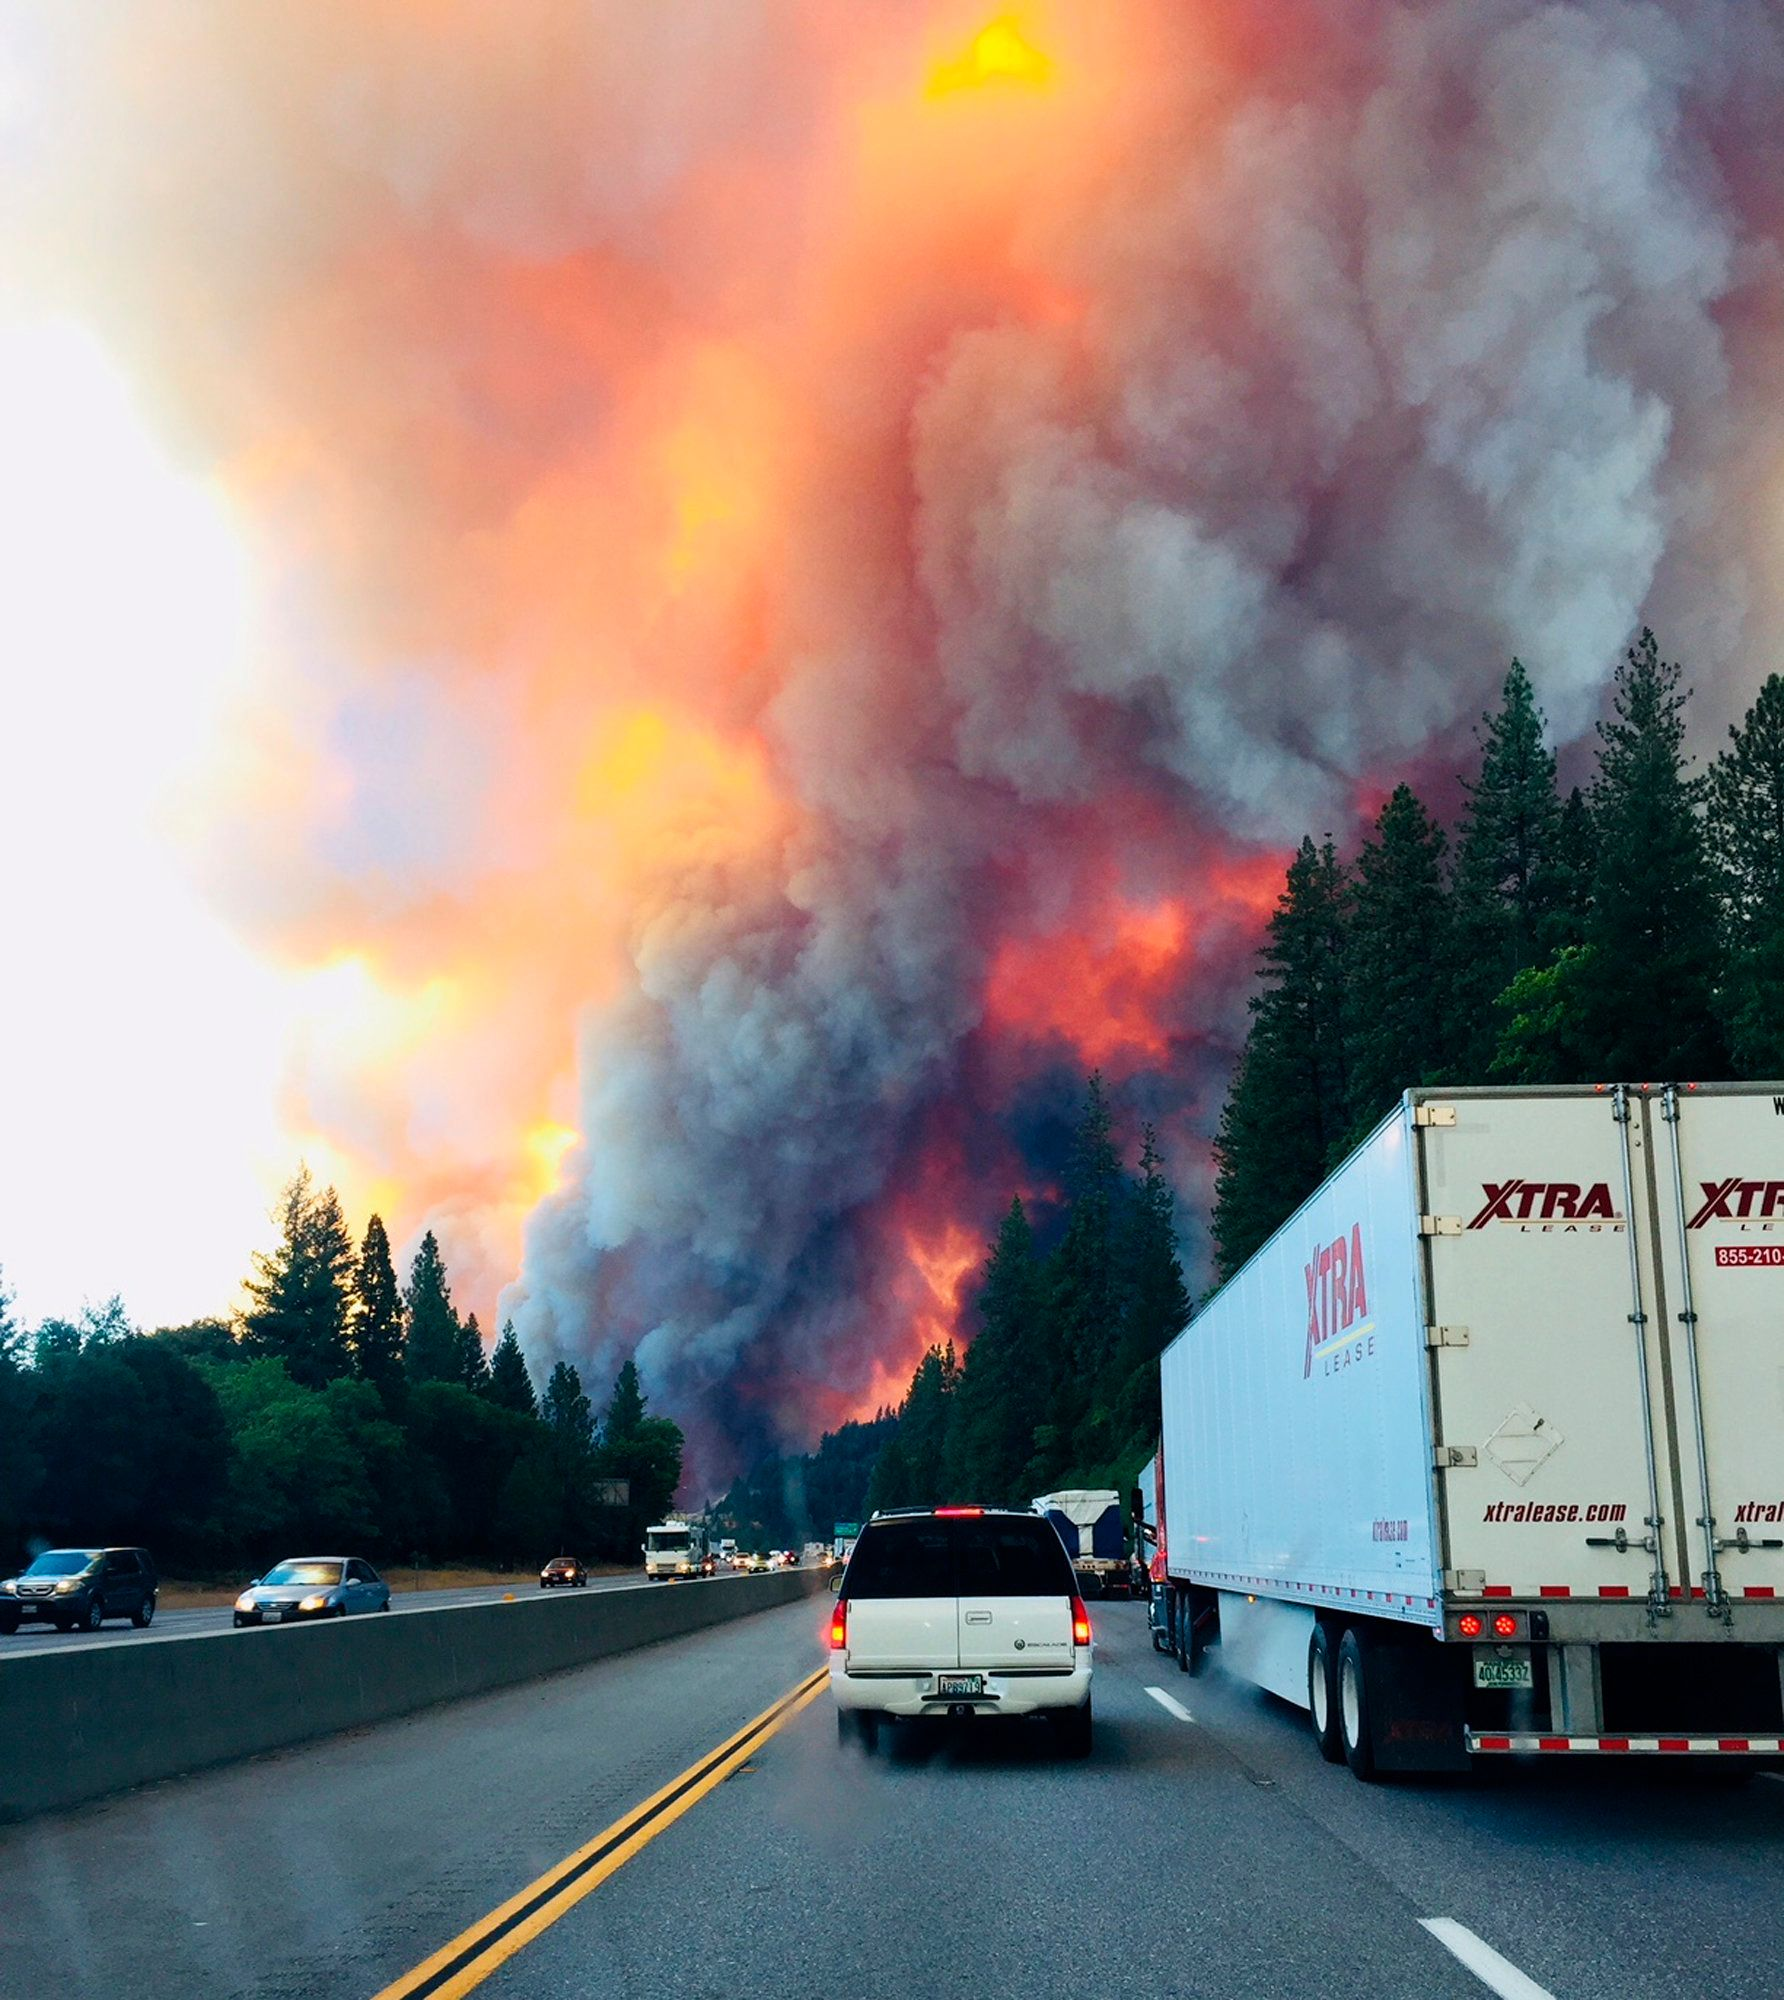 The fire shut down miles of Interstate 5 and there was no immediate word on when it would reopen